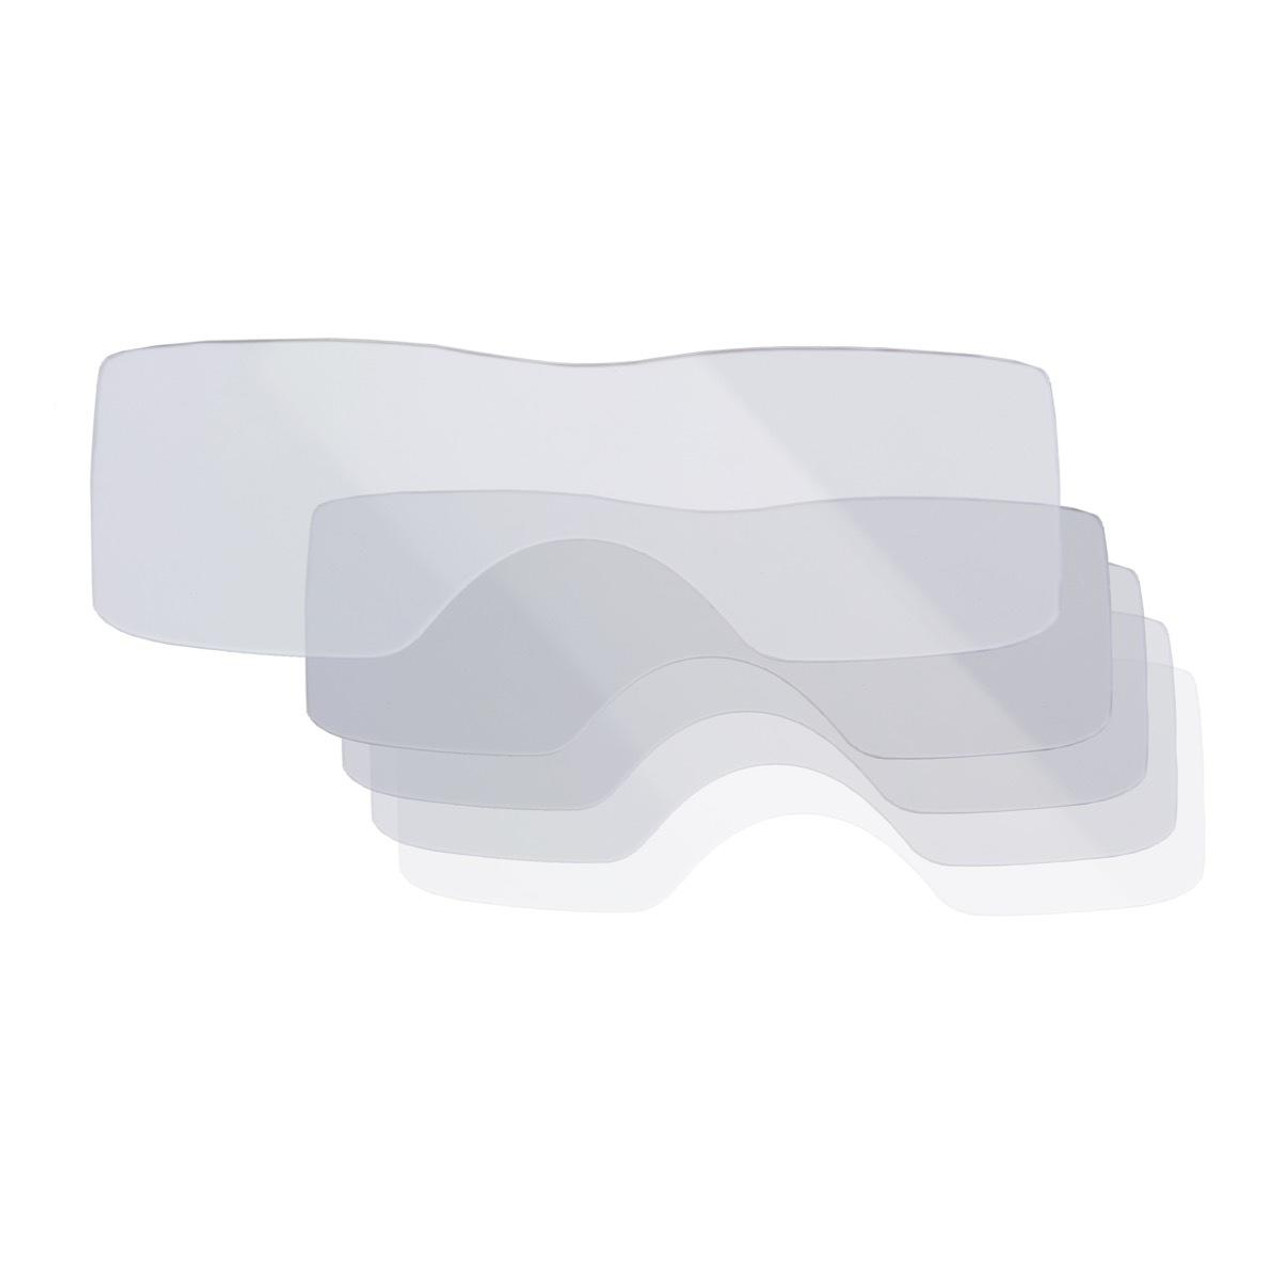 Lincoln Electric Lincoln Electric ArcSpecs Clear Outside Cover Lens - KP4649-1